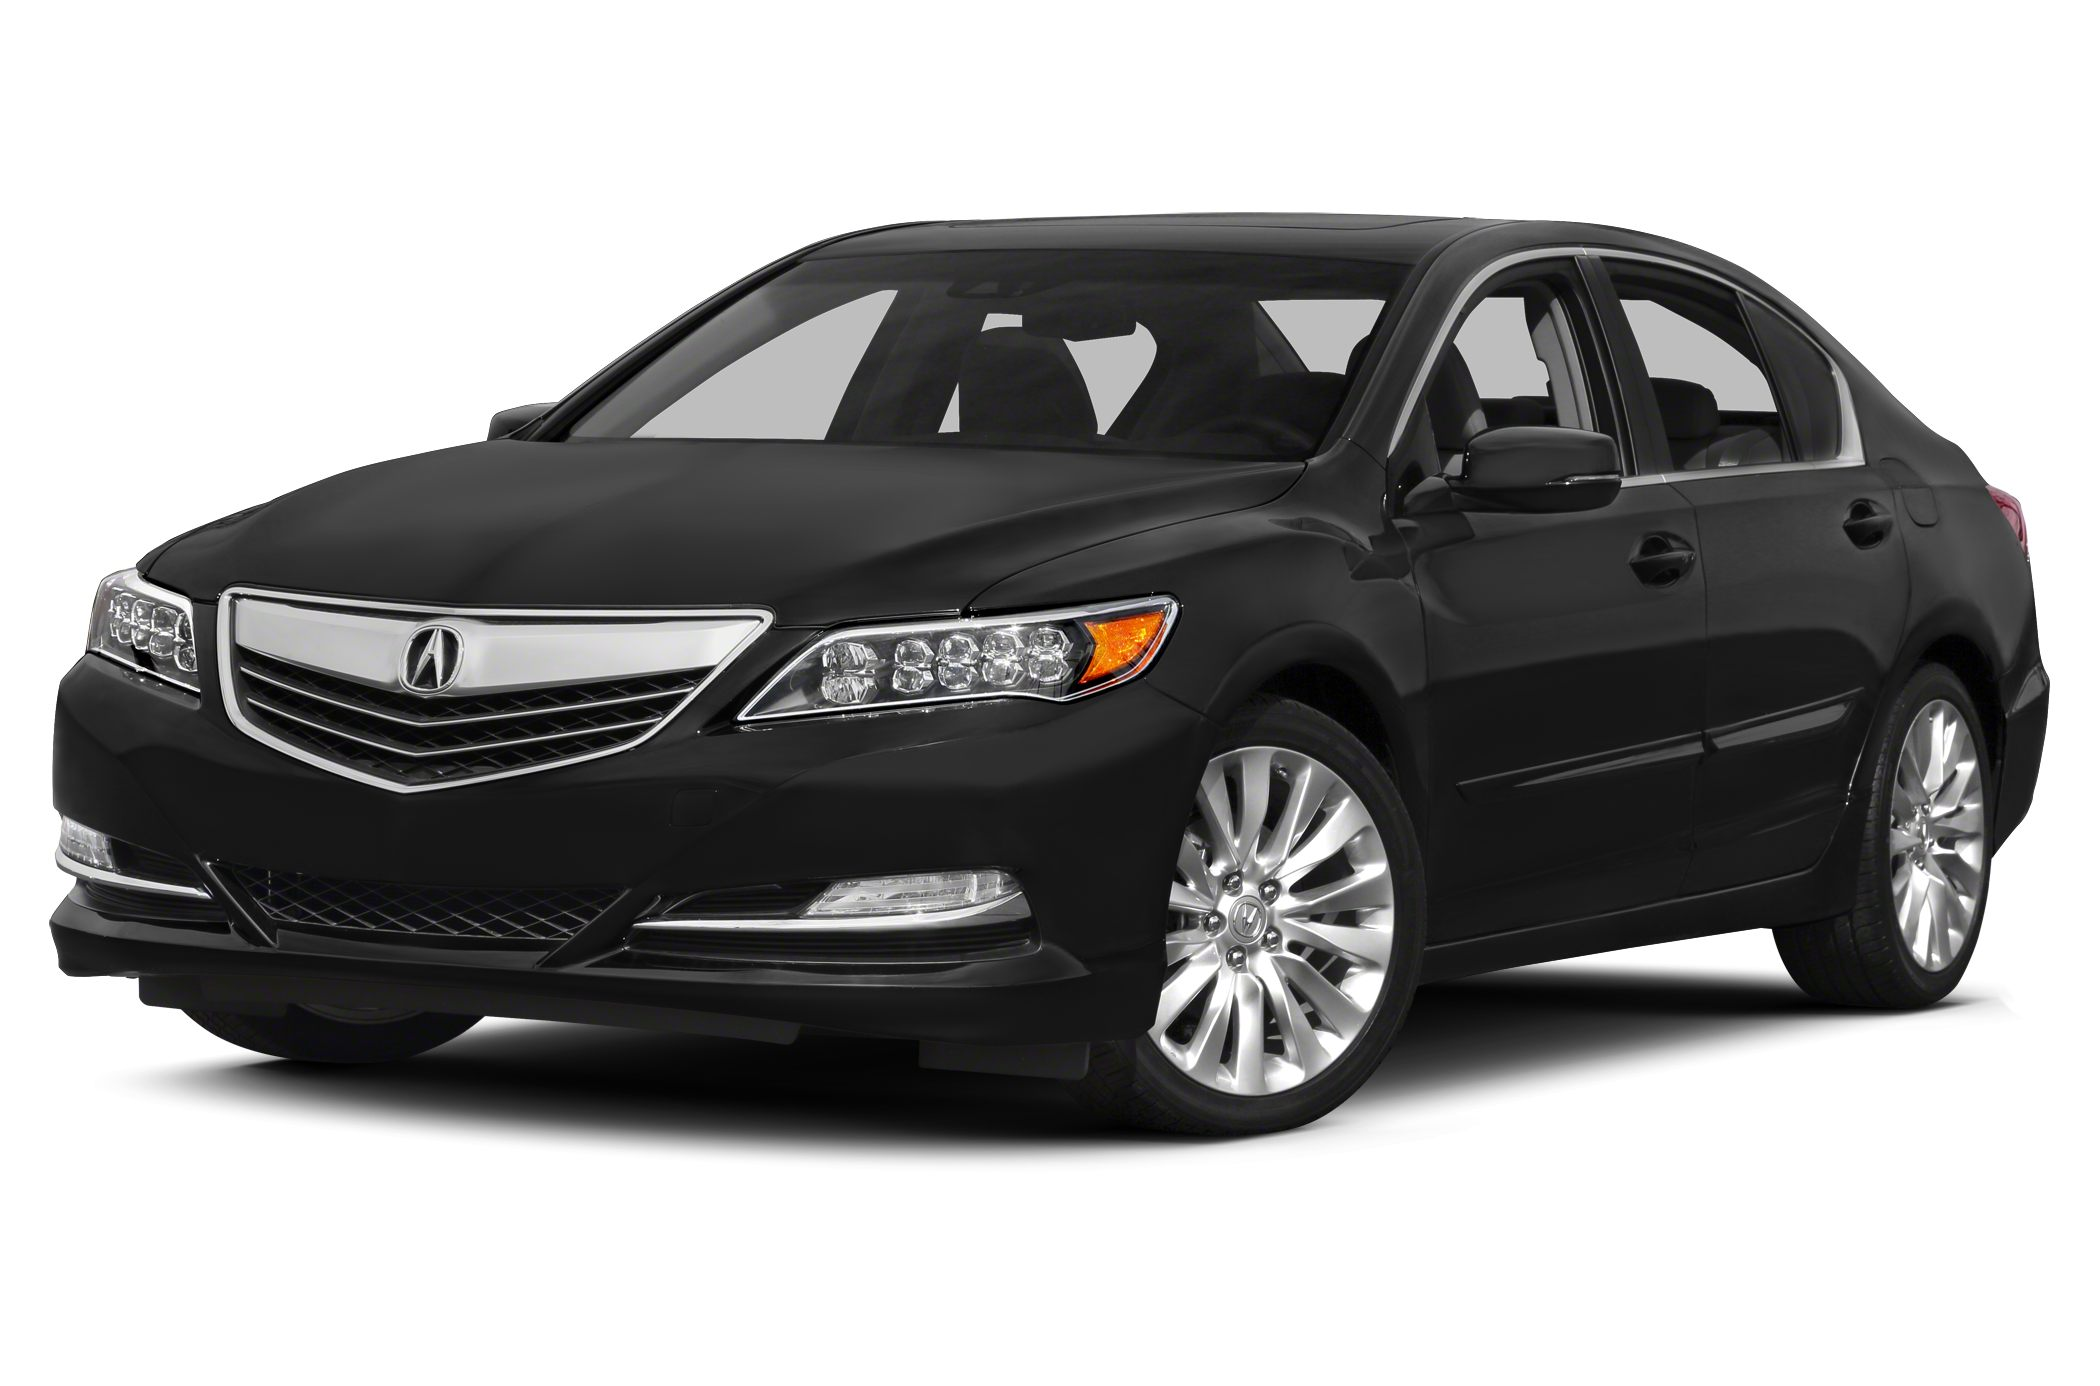 2014 Acura RLX Base Sedan for sale in Minneapolis for $60,845 with 41 miles.